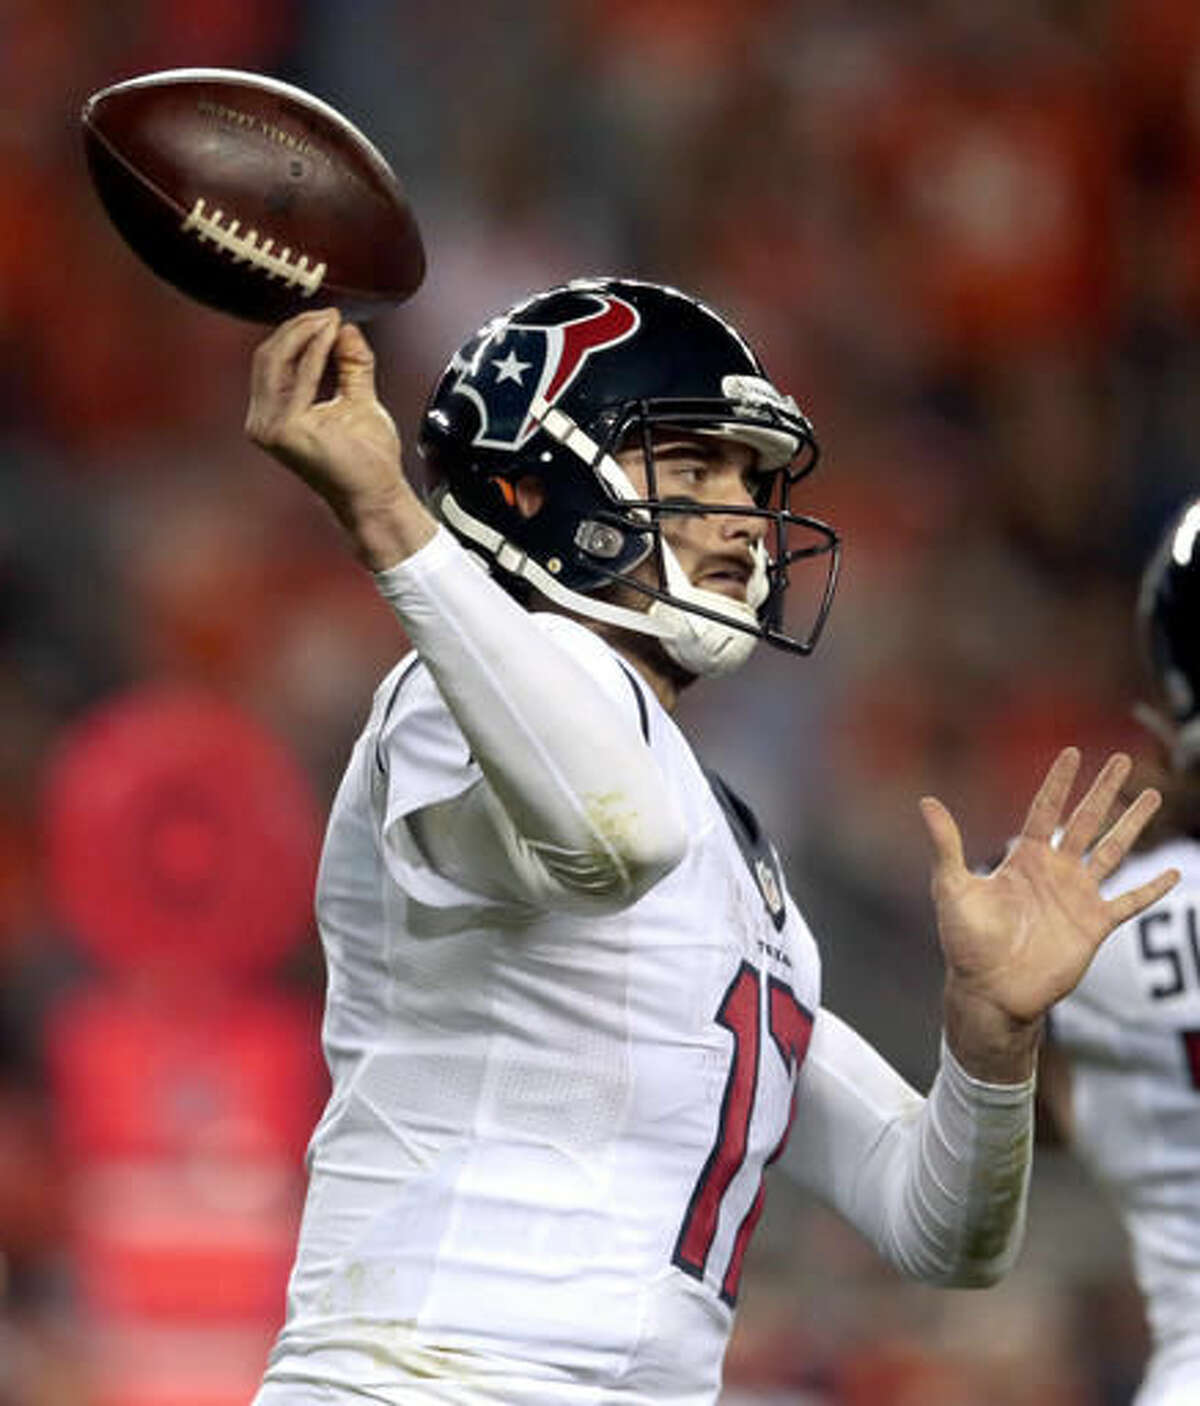 Houston Texans quarterback Brock Osweiler (17) bobbles the throw during the second half of an NFL football game against the Denver Broncos, Monday, Oct. 24, 2016, in Denver. (AP Photo/Joe Mahoney)